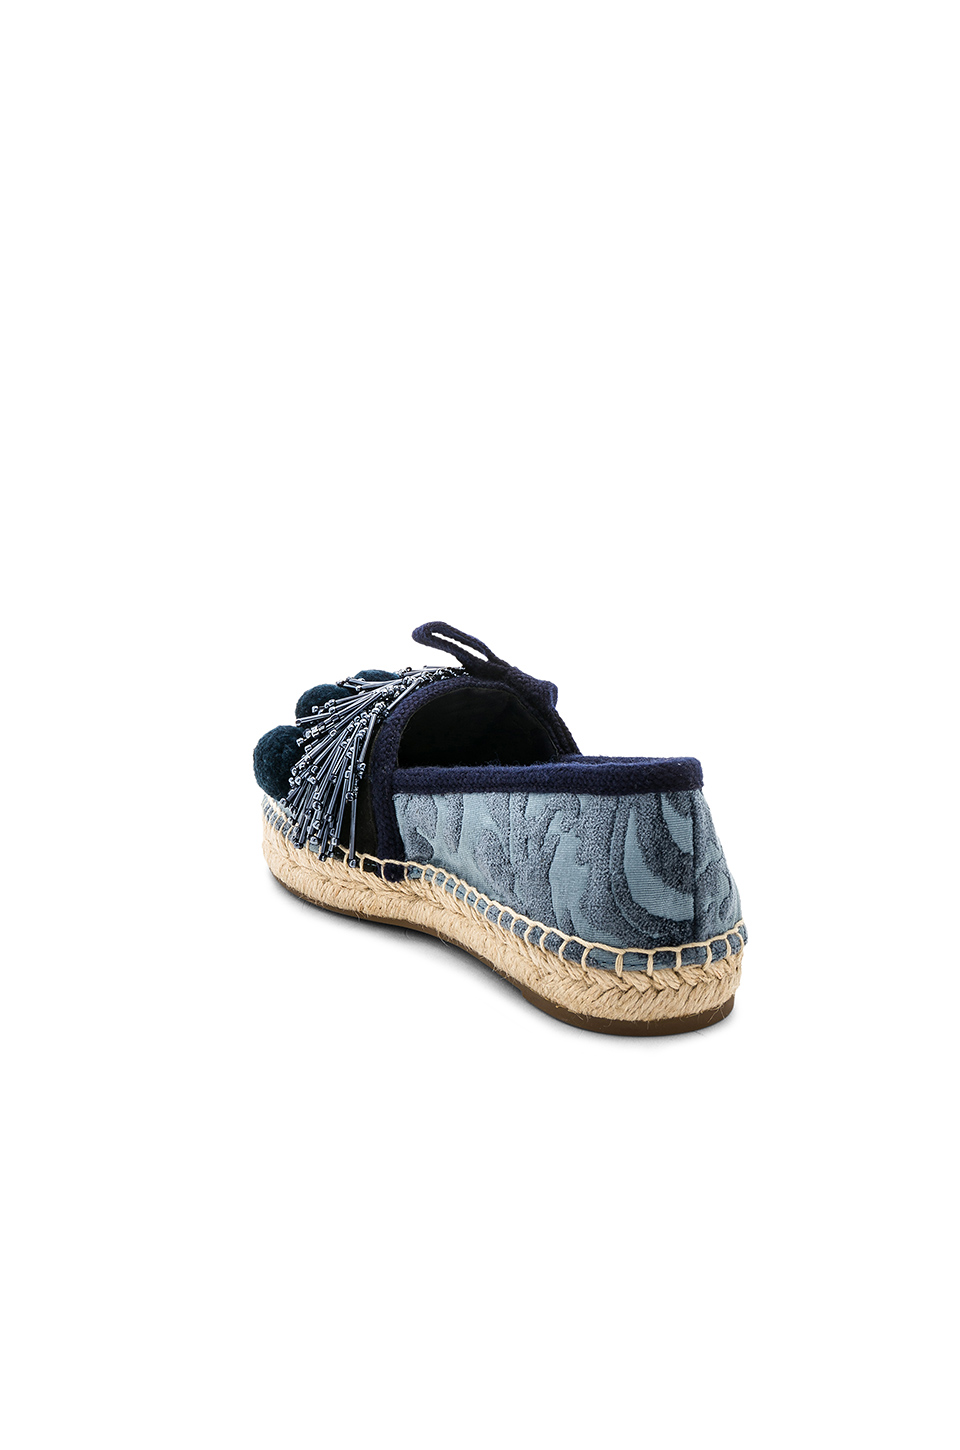 Marc Jacobs Sienna Espadrille in Blue